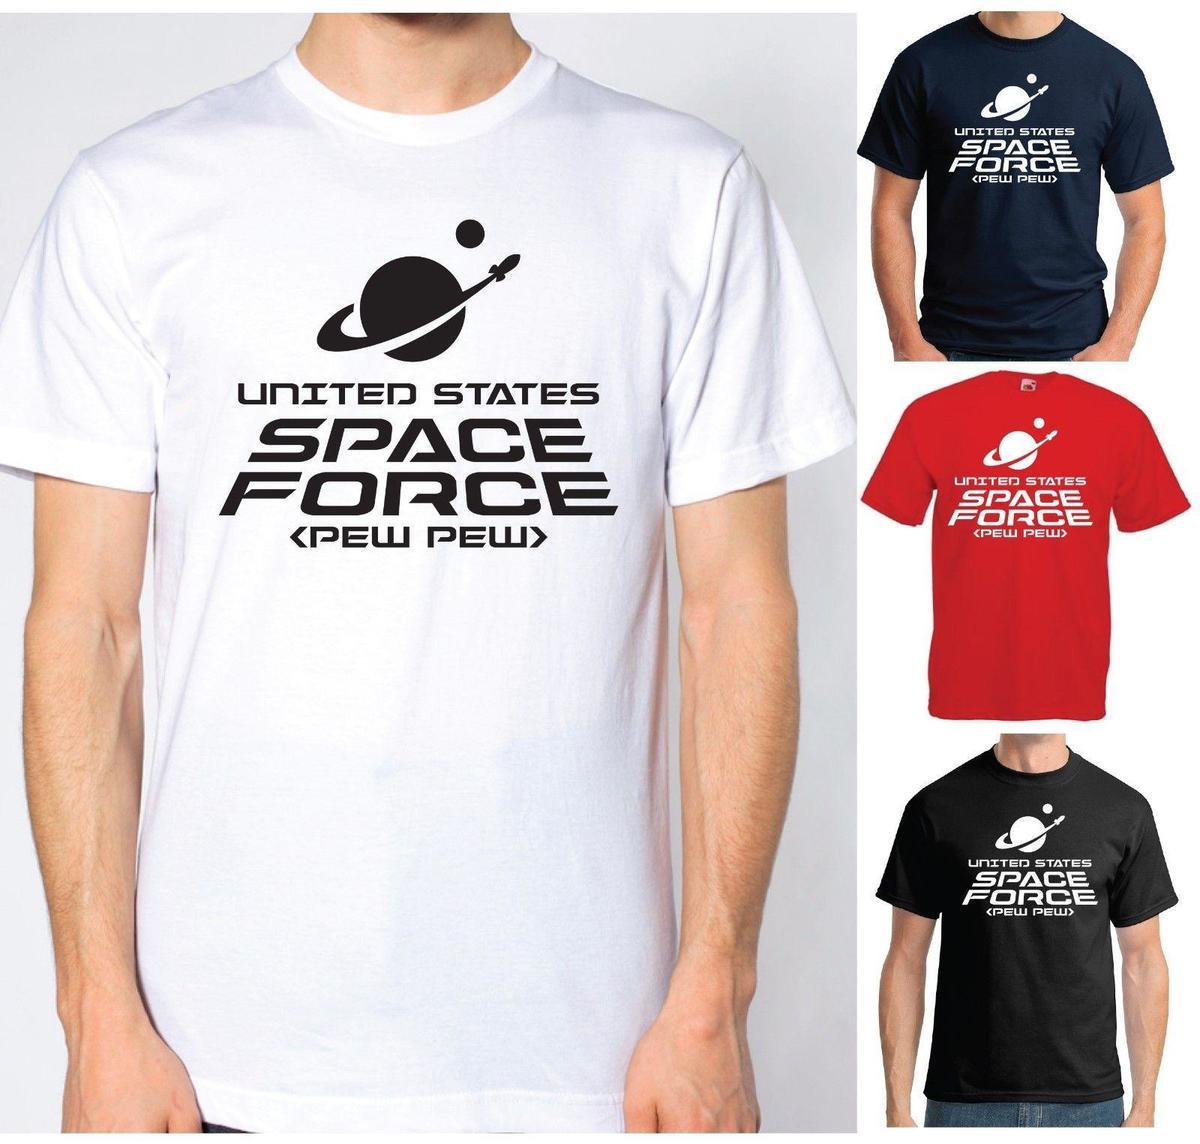 06acc99b United States Space Force T Shirt Pew Pew Funny Sci Fi USA Trump Pence  Humorous T Shirt Cool And Funny T Shirts From Yubin01, $14.67| DHgate.Com